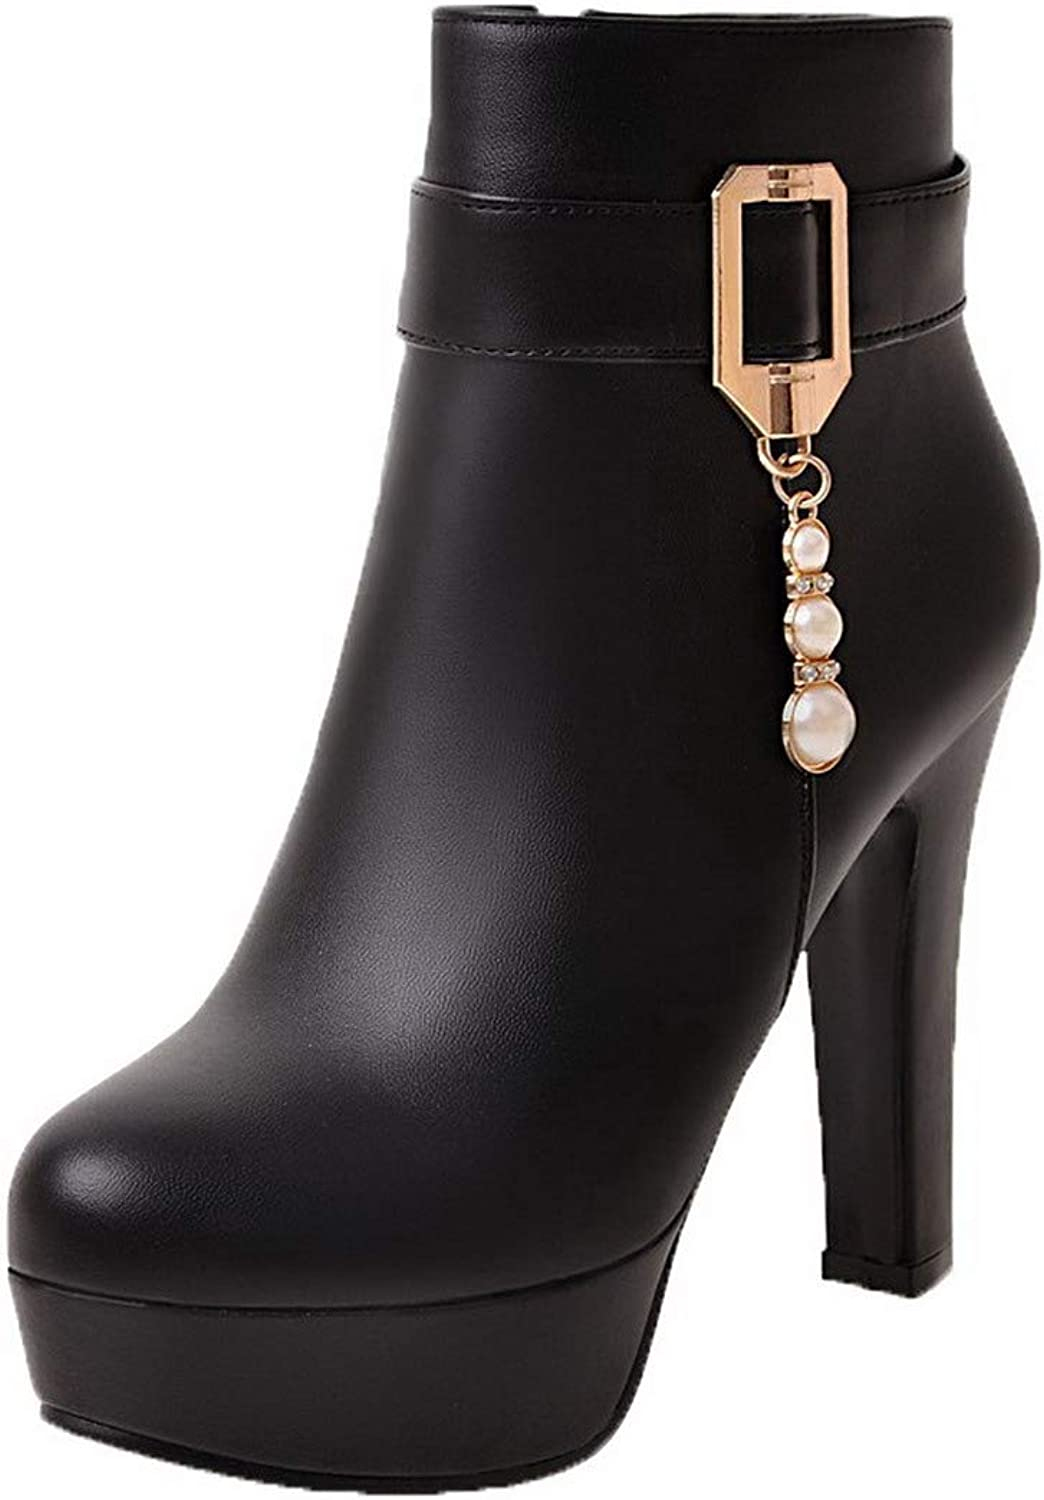 WeenFashion Women's Closed-Toe Ankle-High High-Heels Solid Pu Boots, AMGXY117008